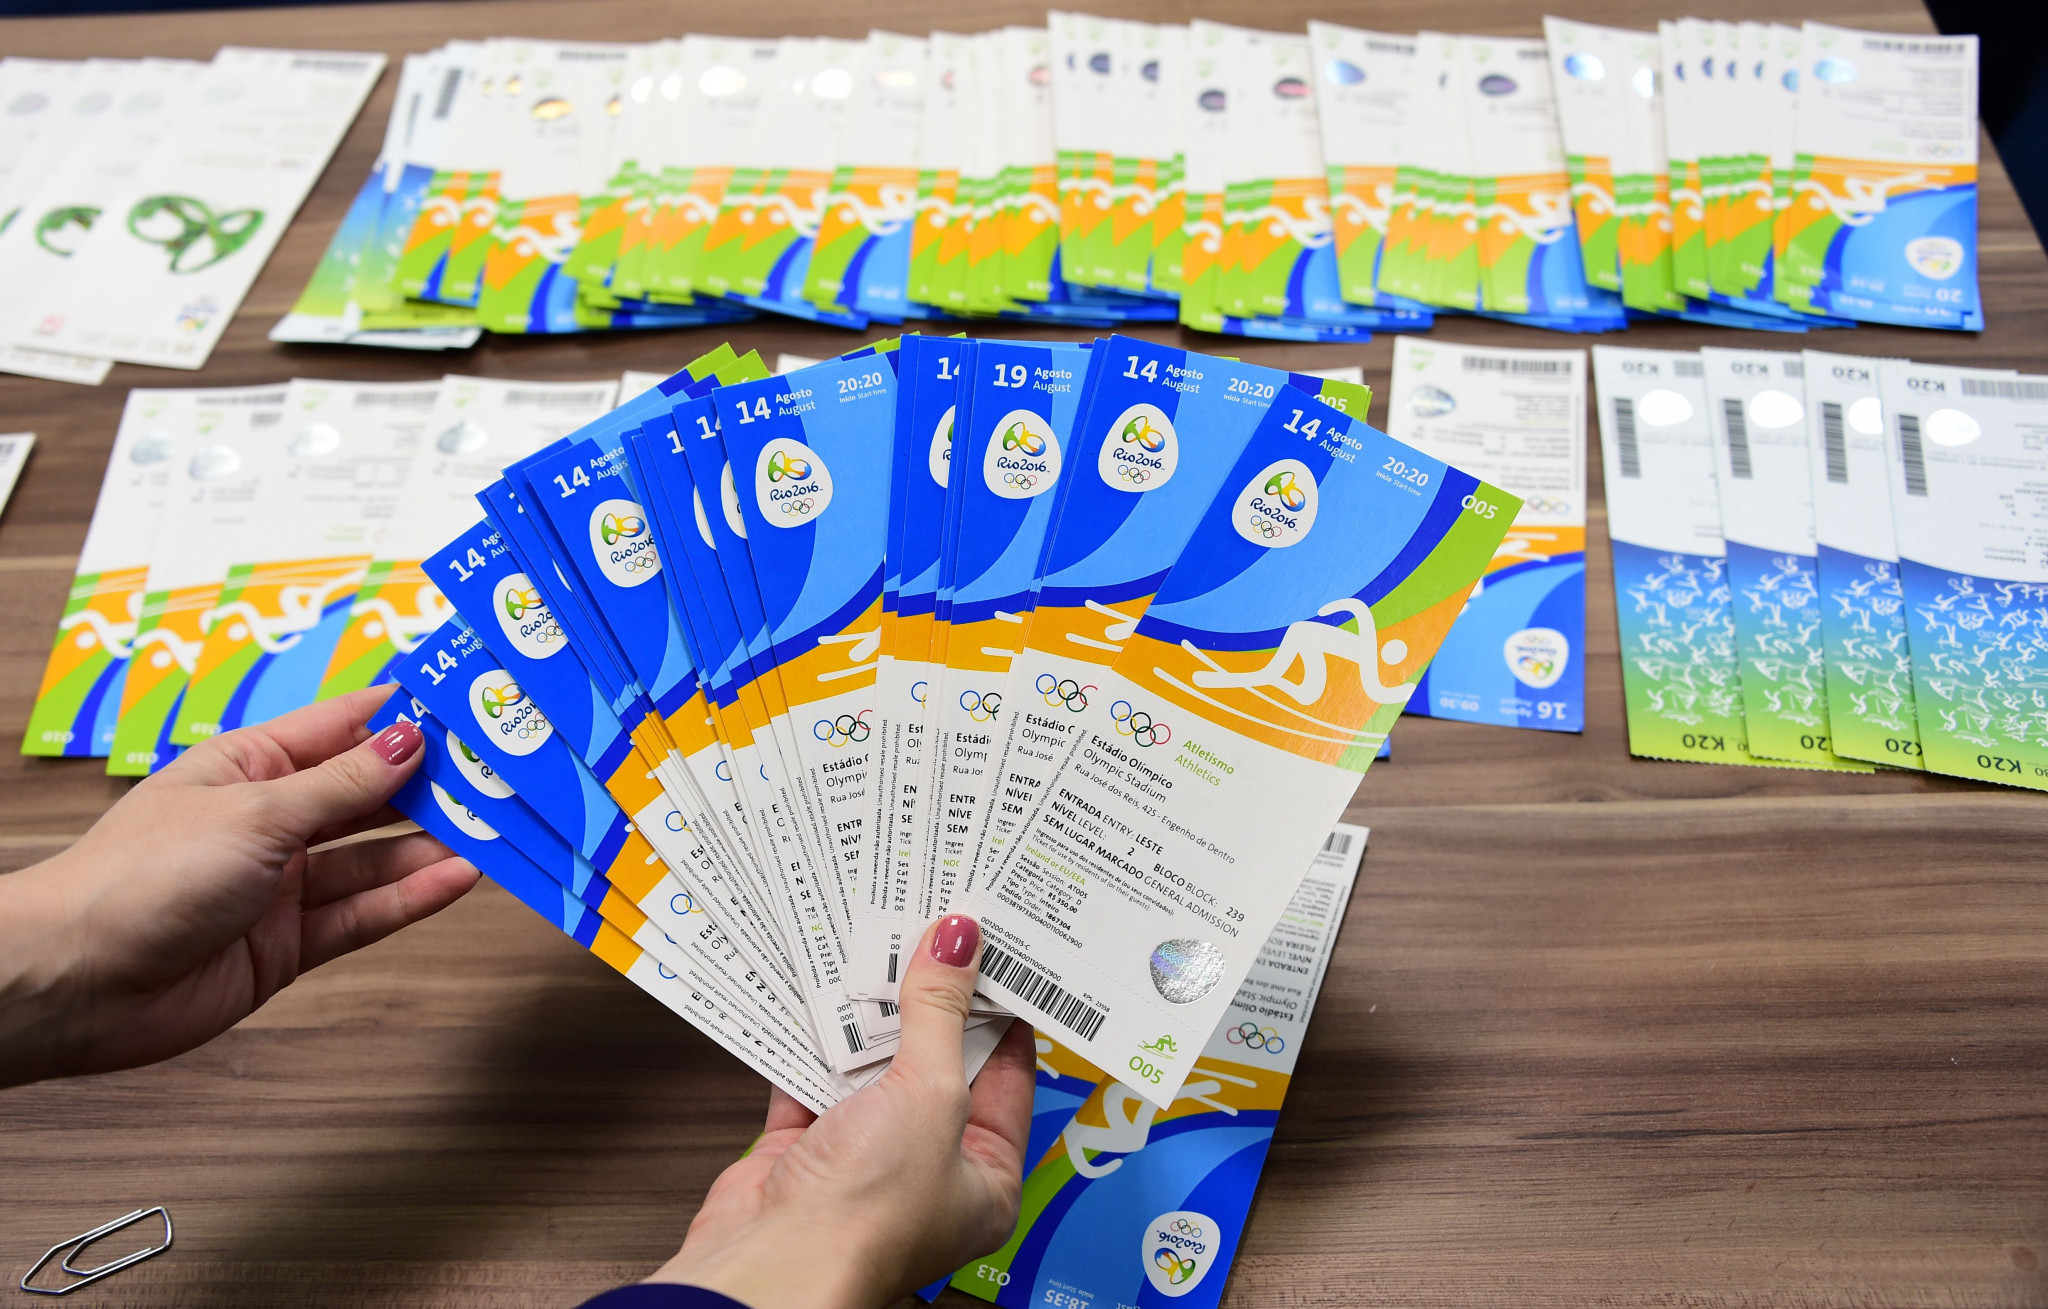 Brazilian police display seized tickets during Rio 2016 ©Getty Images